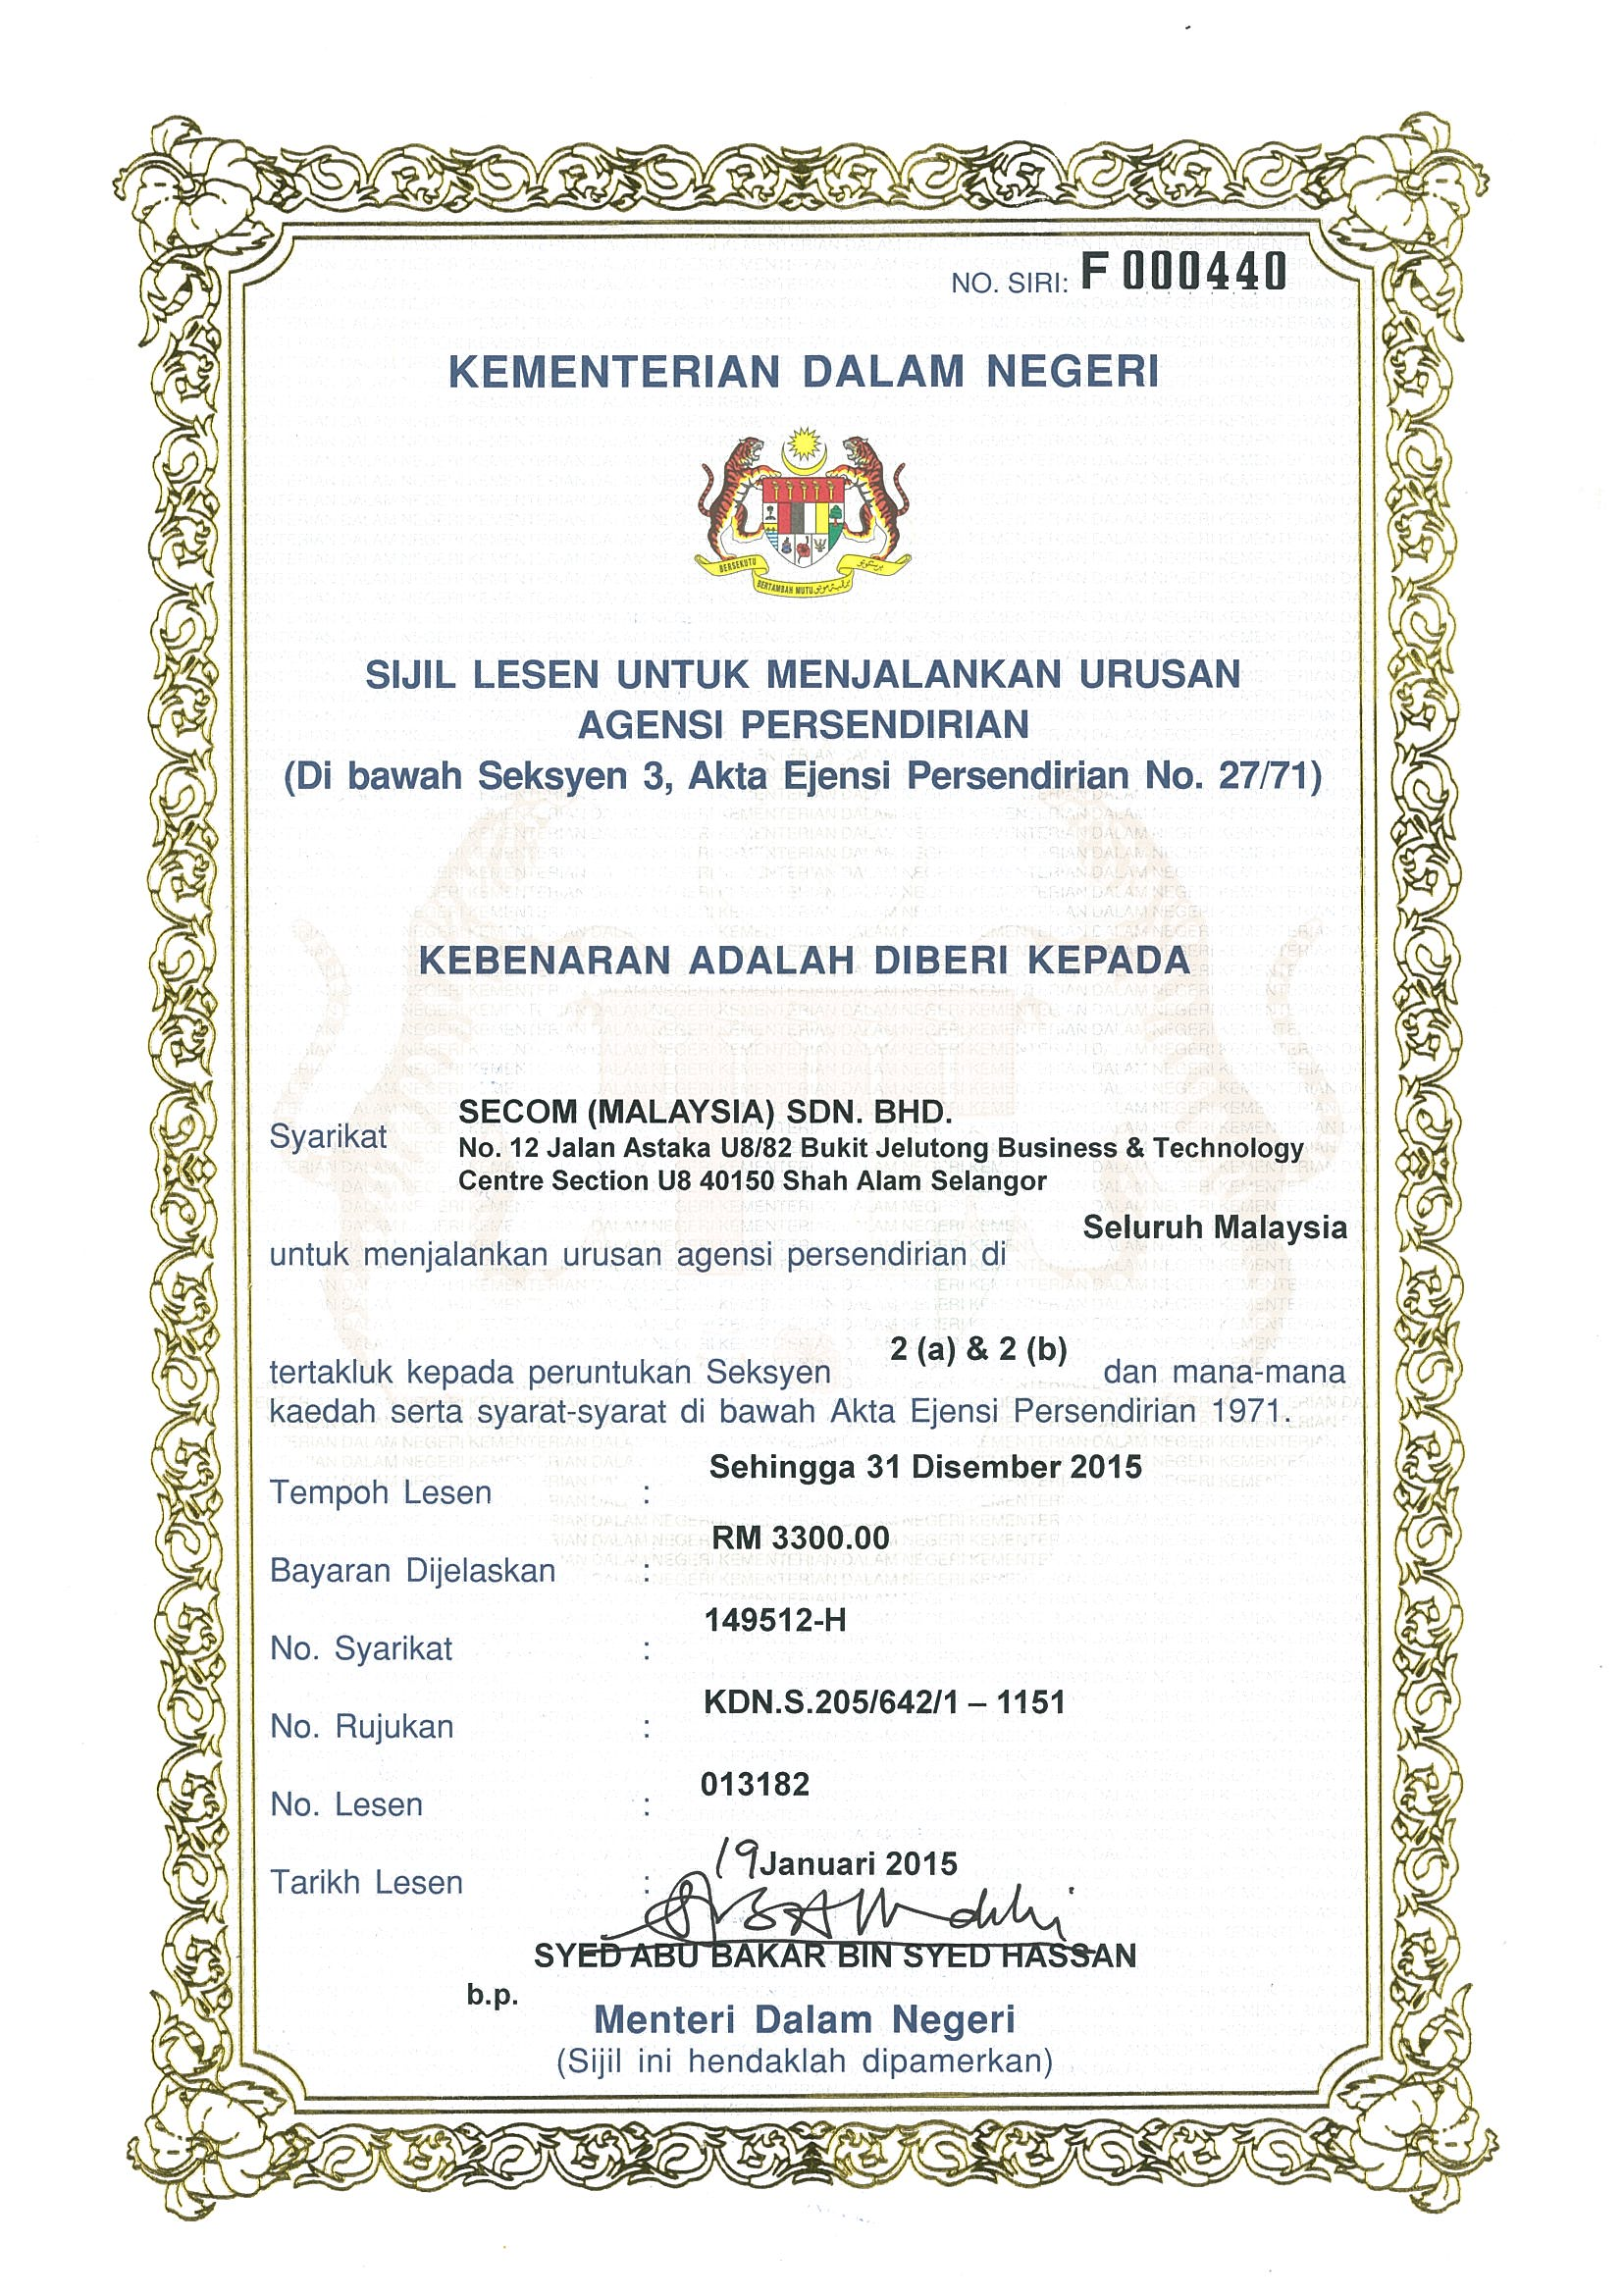 Security License 2(a) & 2(b), by Ministry of Home Affairs